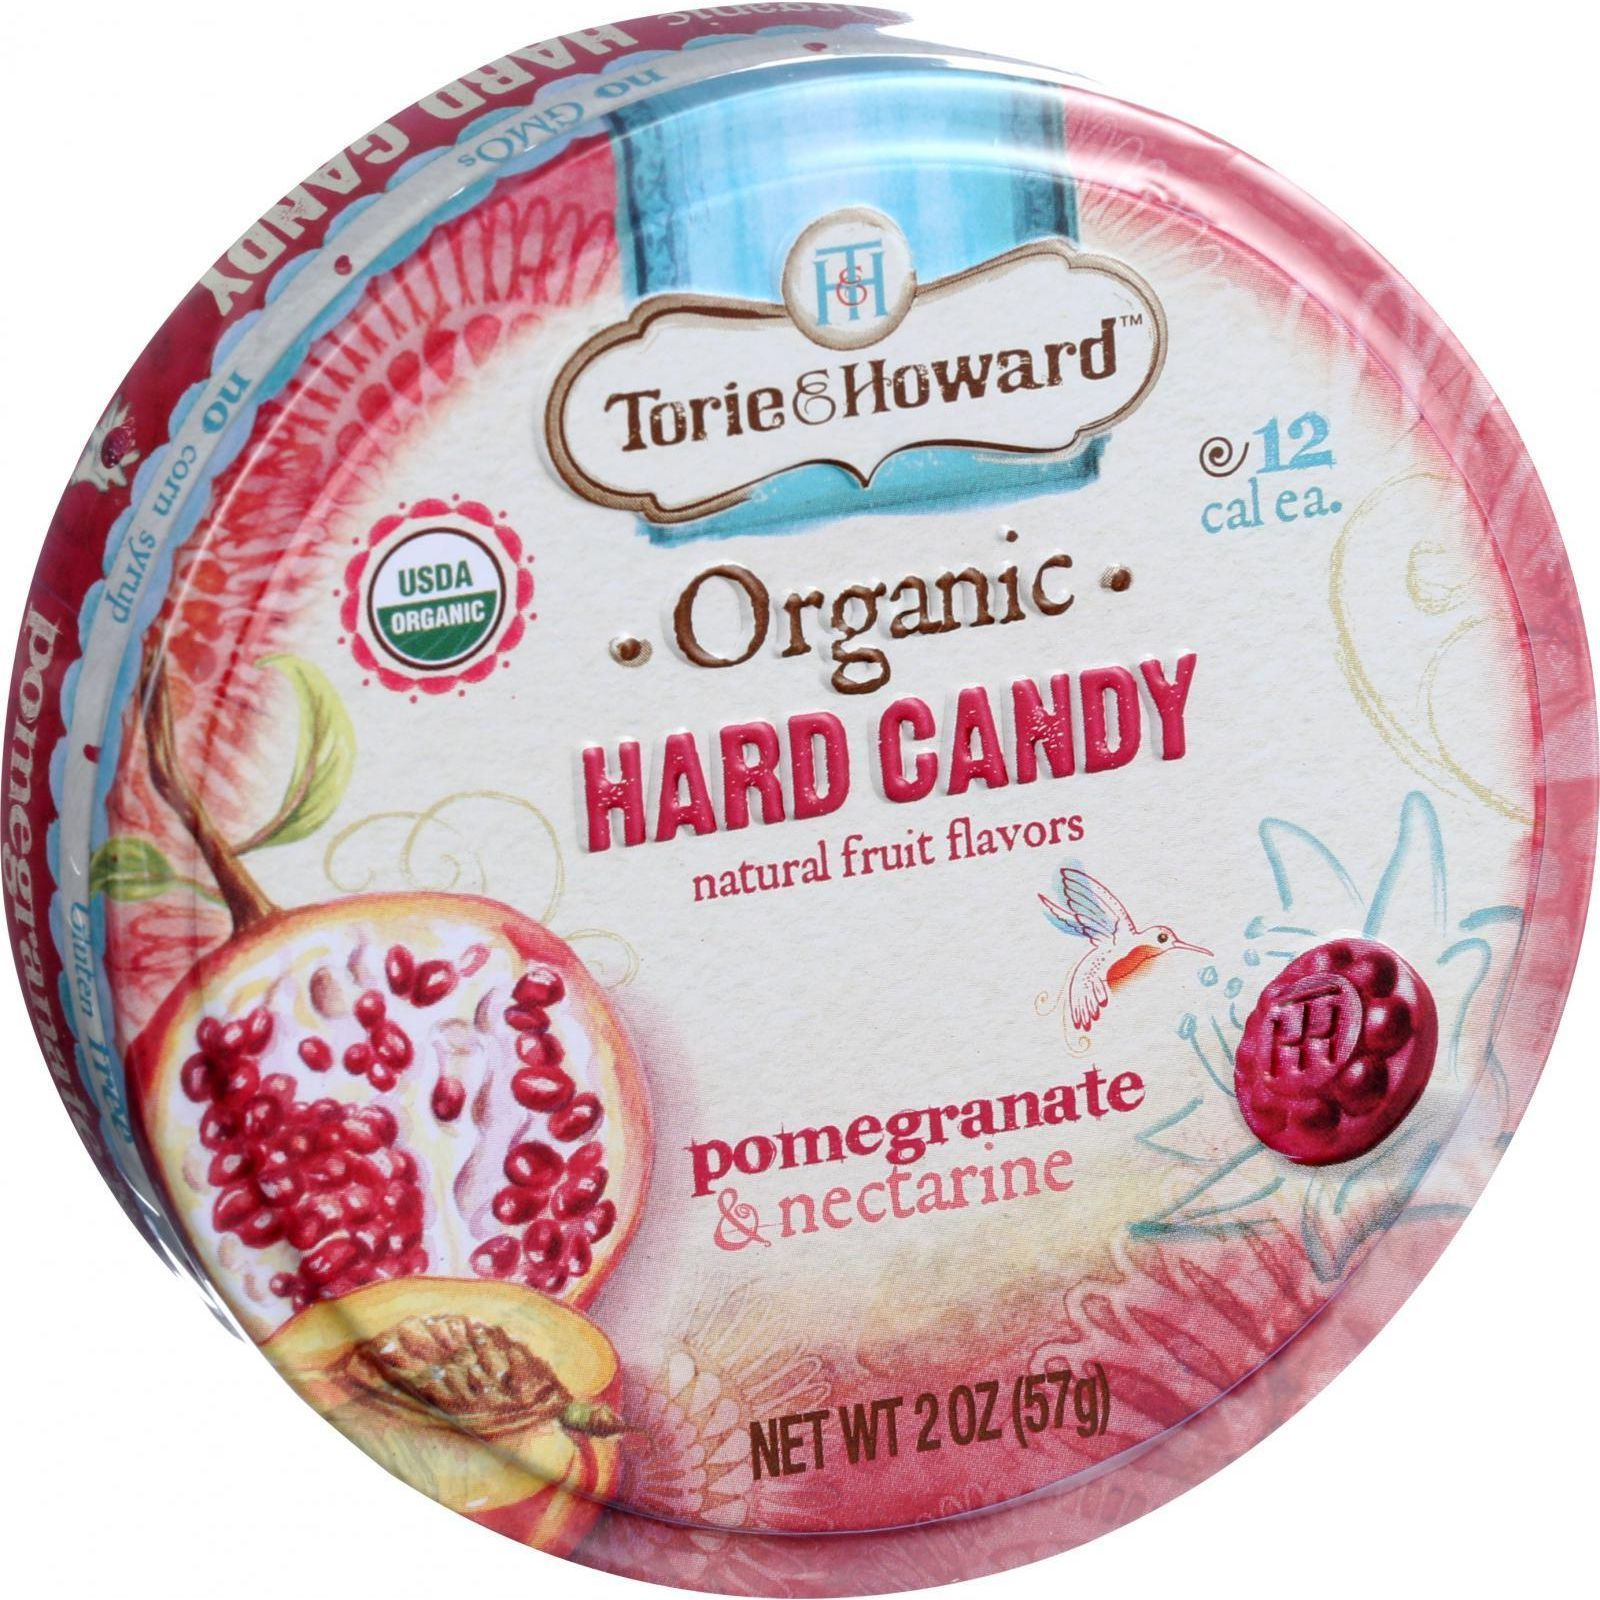 Torie and Howard Organic Hard Candy - Pomegranate and Nectarine - 2 oz - Case of 8